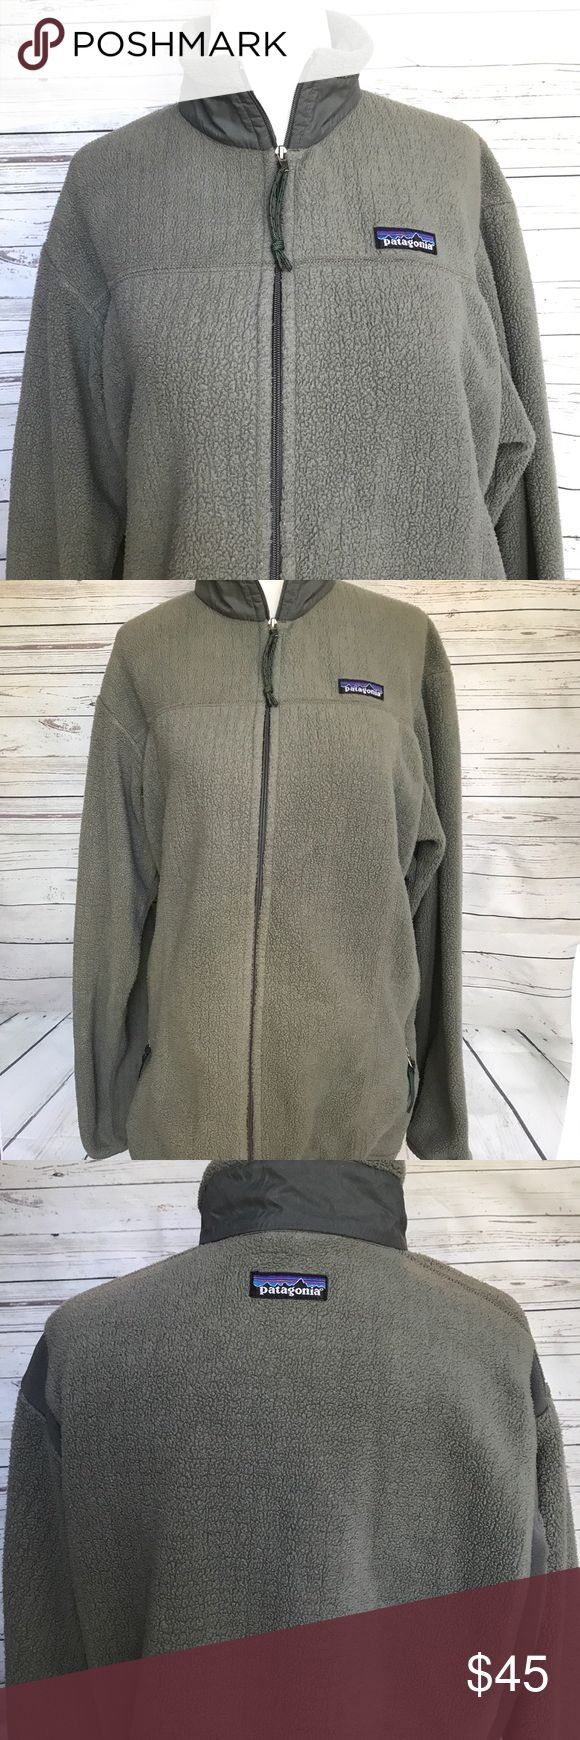 "Patagonia Polartec Green Fleece Zip Jacket L Patagonia Women's Green Fleece Polartec regulator zip up jacket size large. Smoke free home. Minor wear from wash and use. Bust - 20"" length - 25"" Patagonia Jackets & Coats"